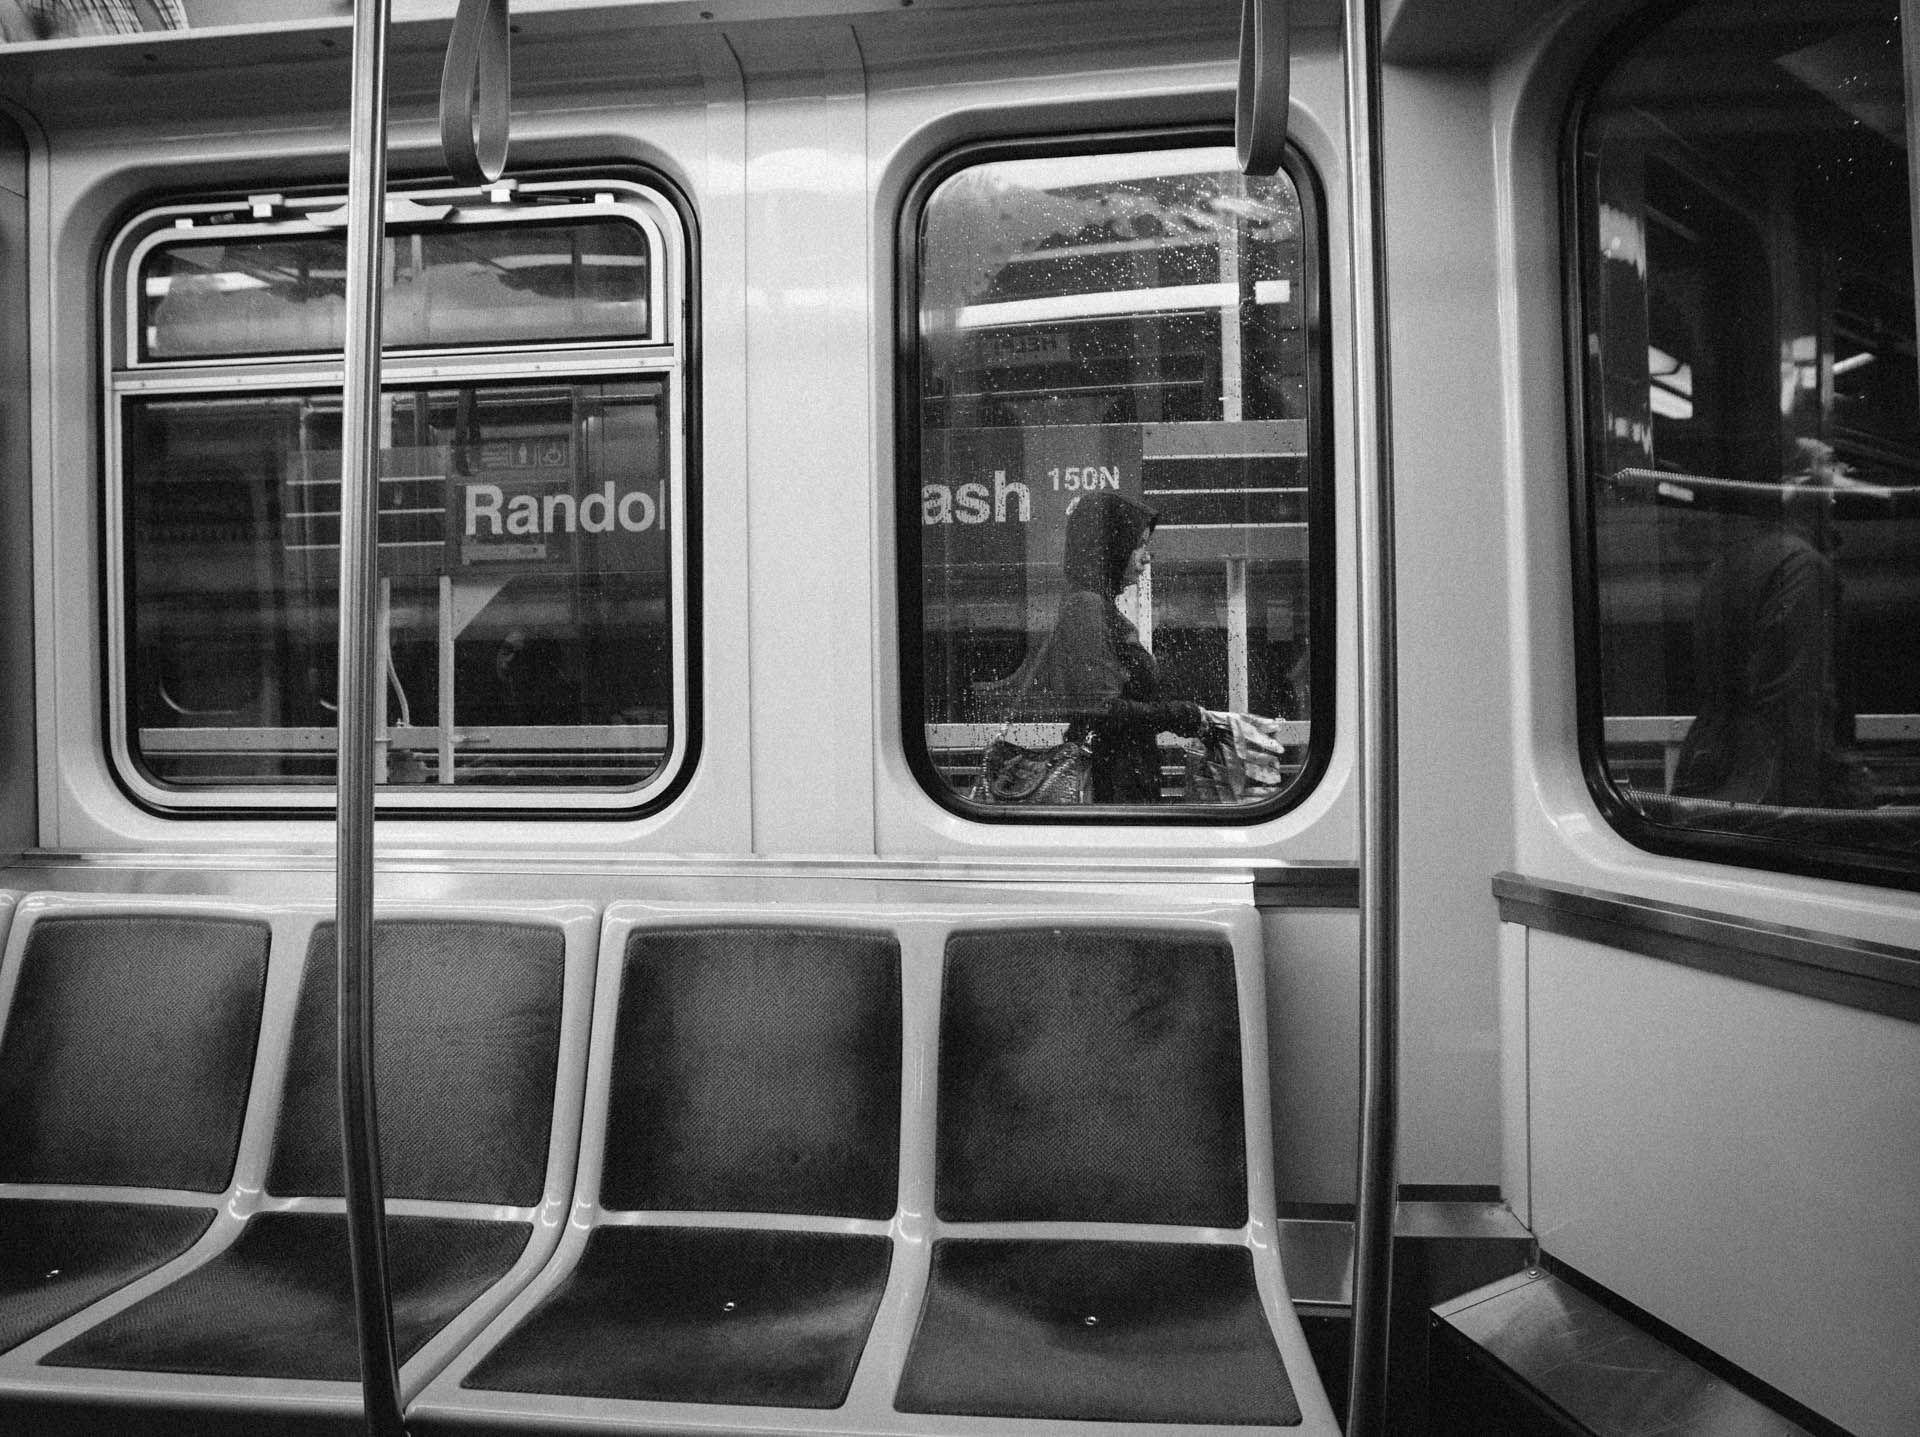 chicago-l-empty-seats-lady-randolf-wabash-5688untitled